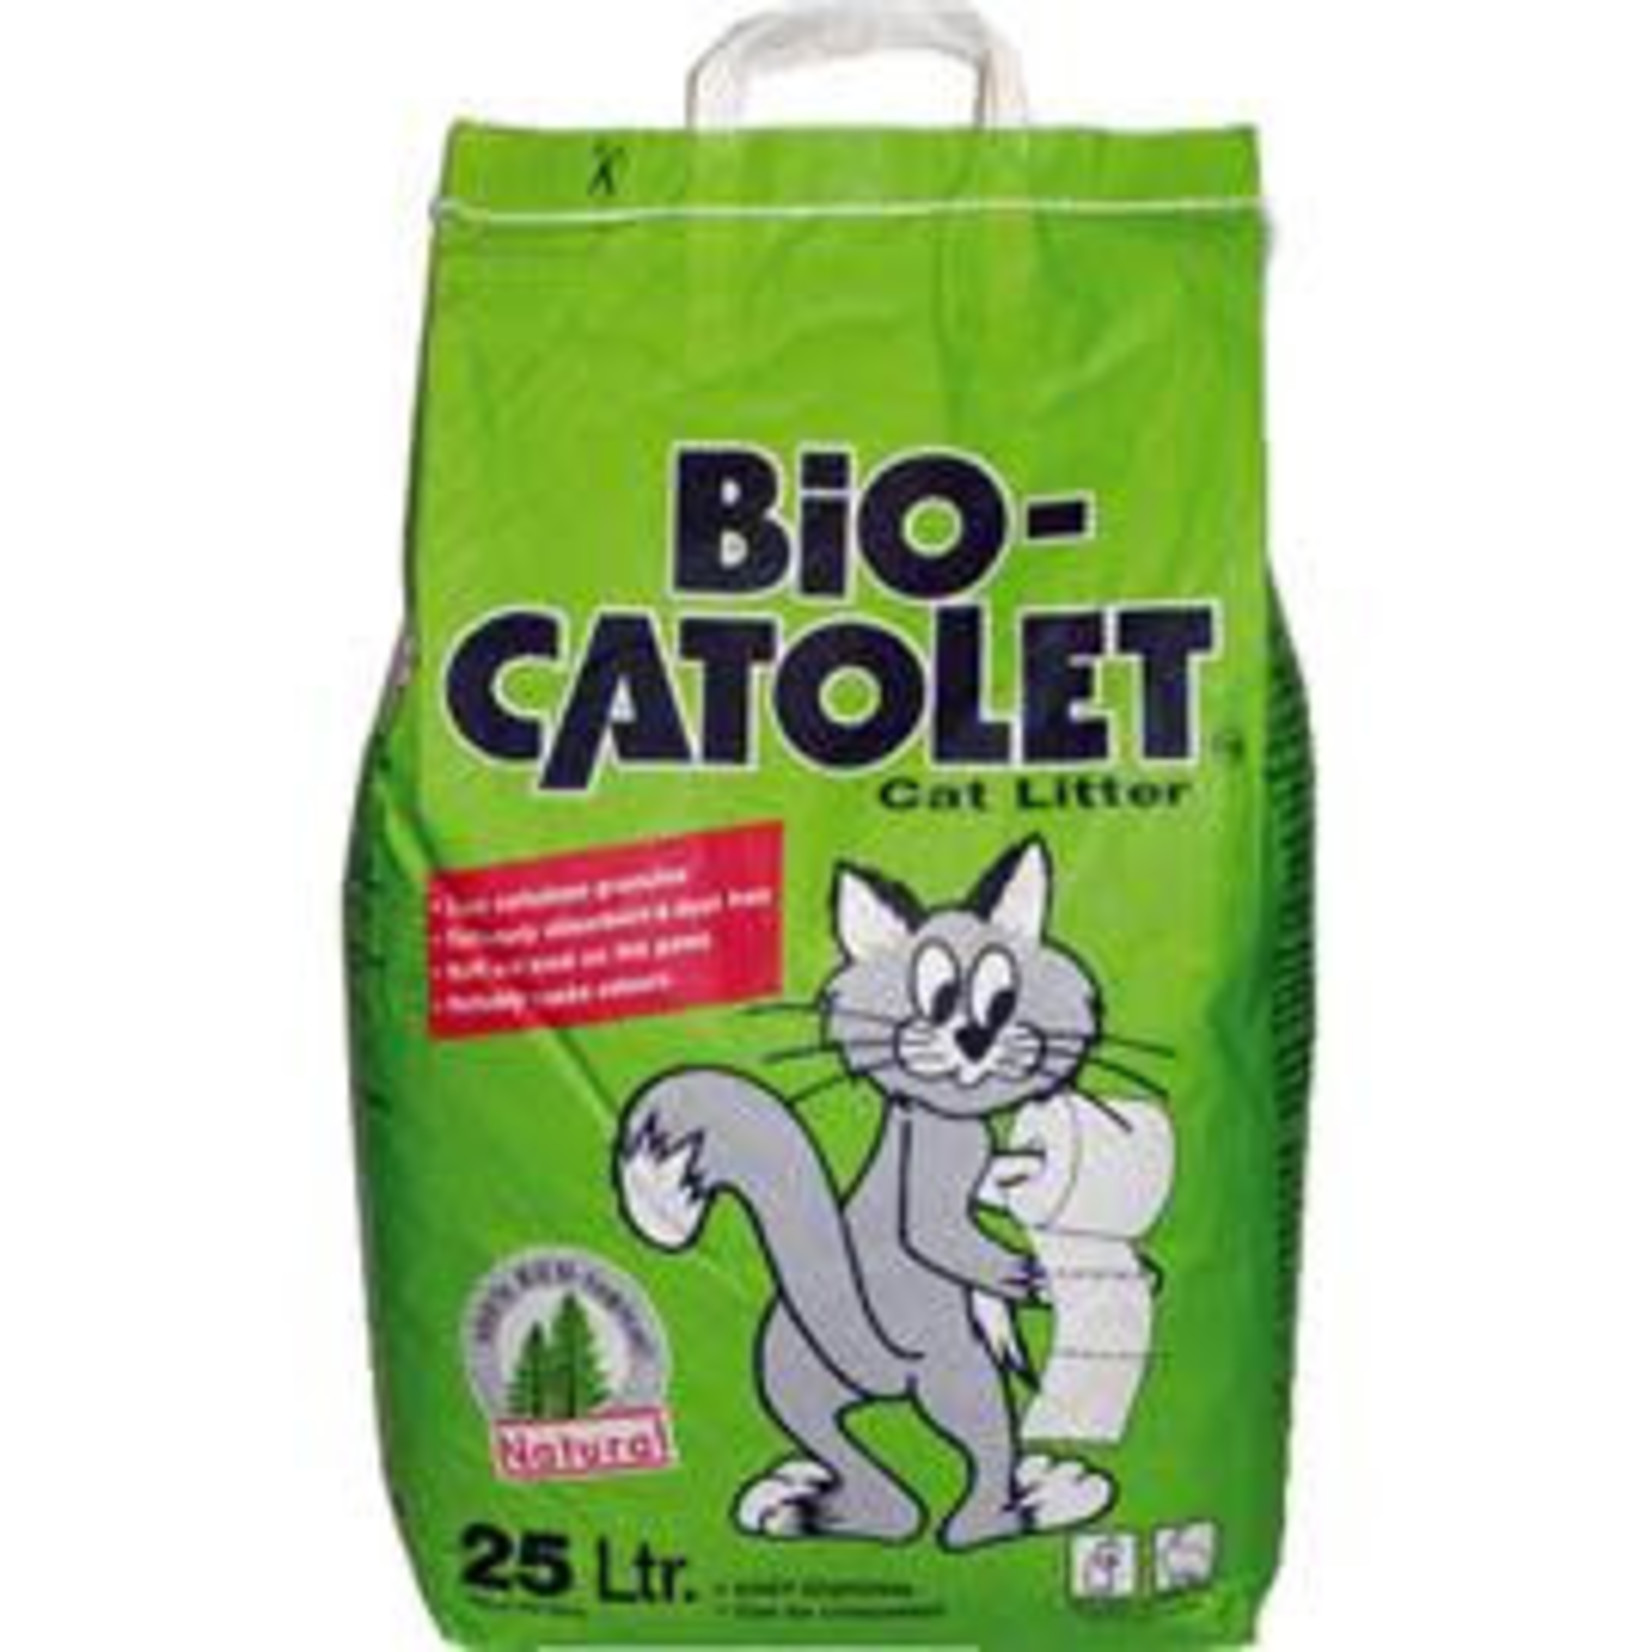 Bio-Catolet Bio Catolet 100% Recycled Paper Cat Litter